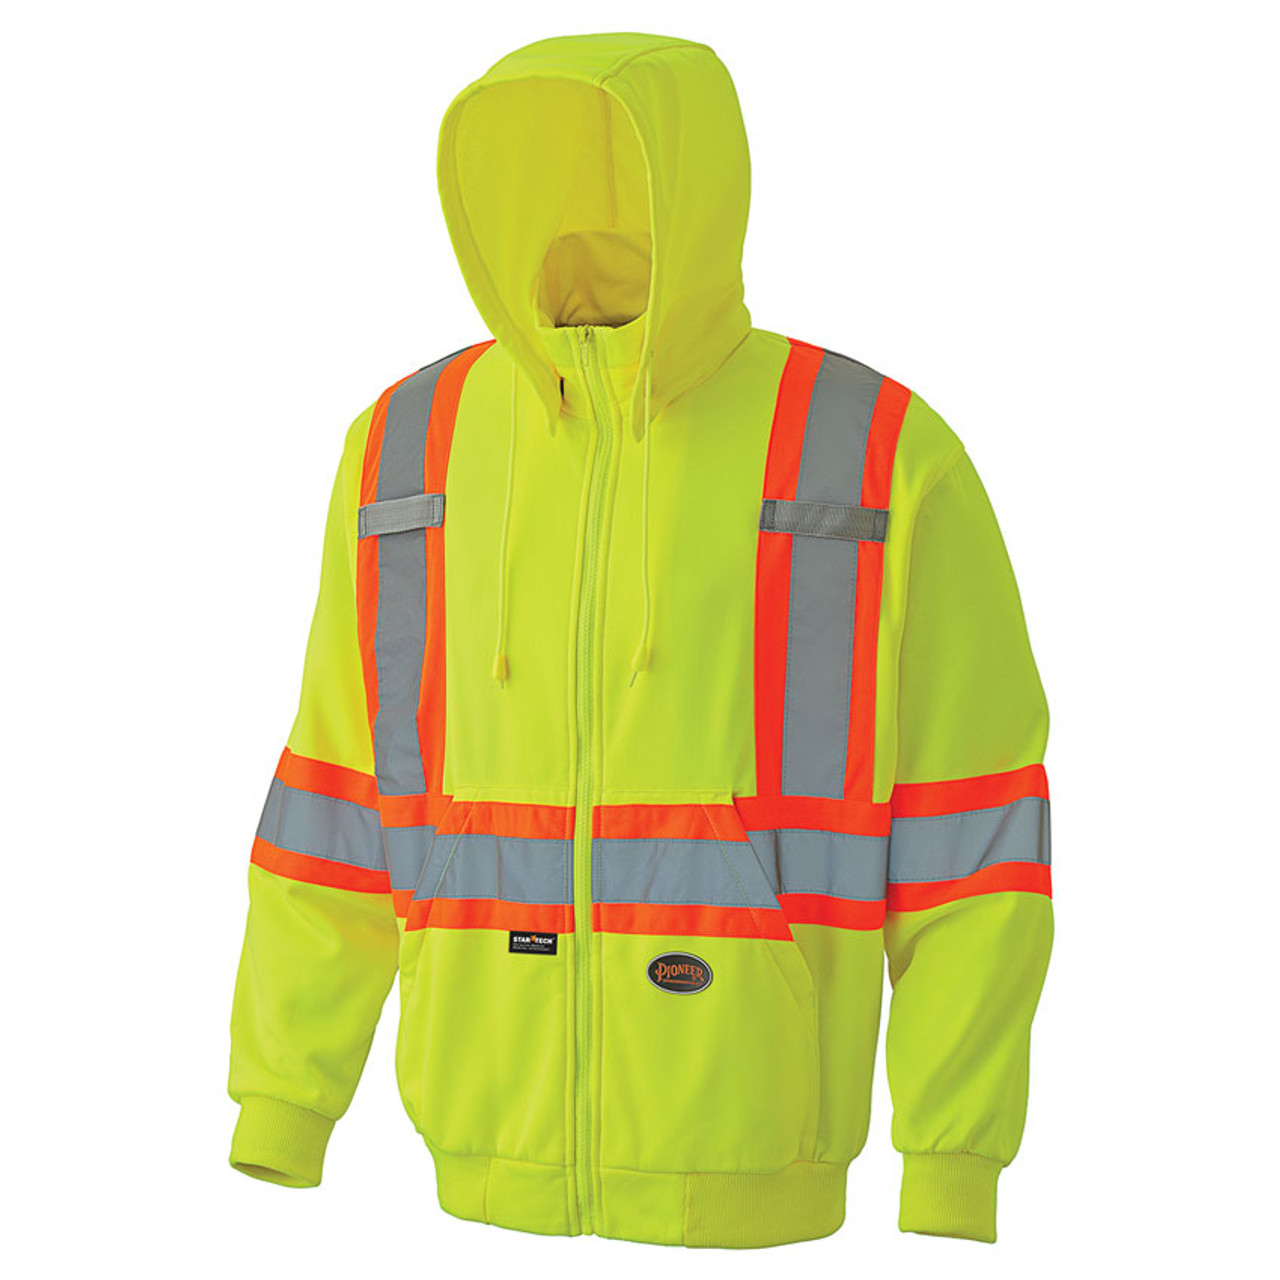 e5a911e5d36 Hi-Vis Micro Fleece Zip-Up Safety Hoodie - CSA